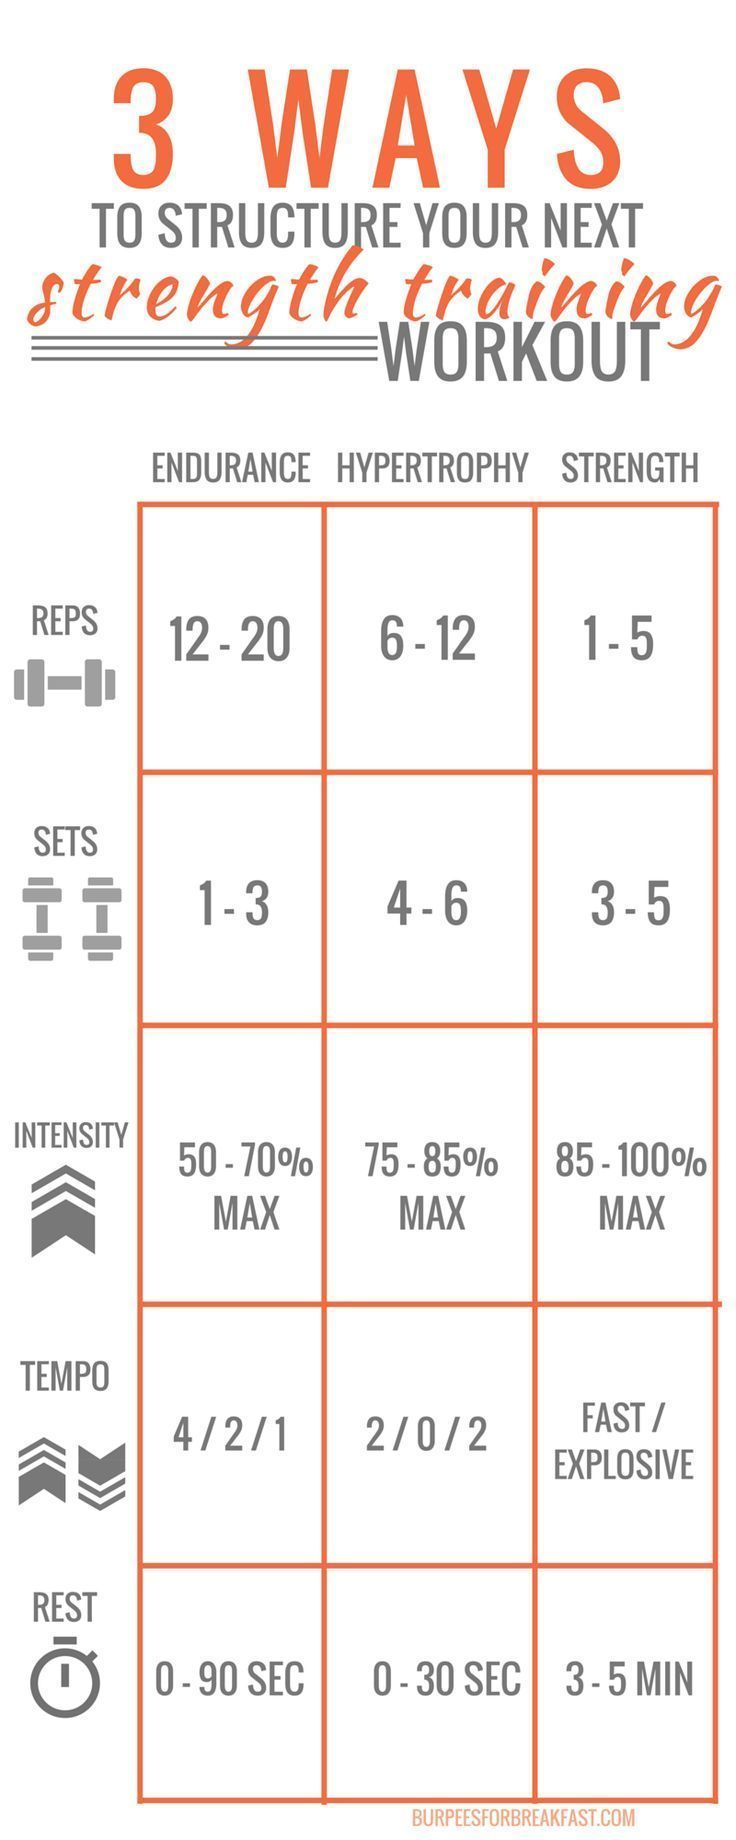 Strength Training Workout: 3 Ways to Structure Your Next One #weighttraining